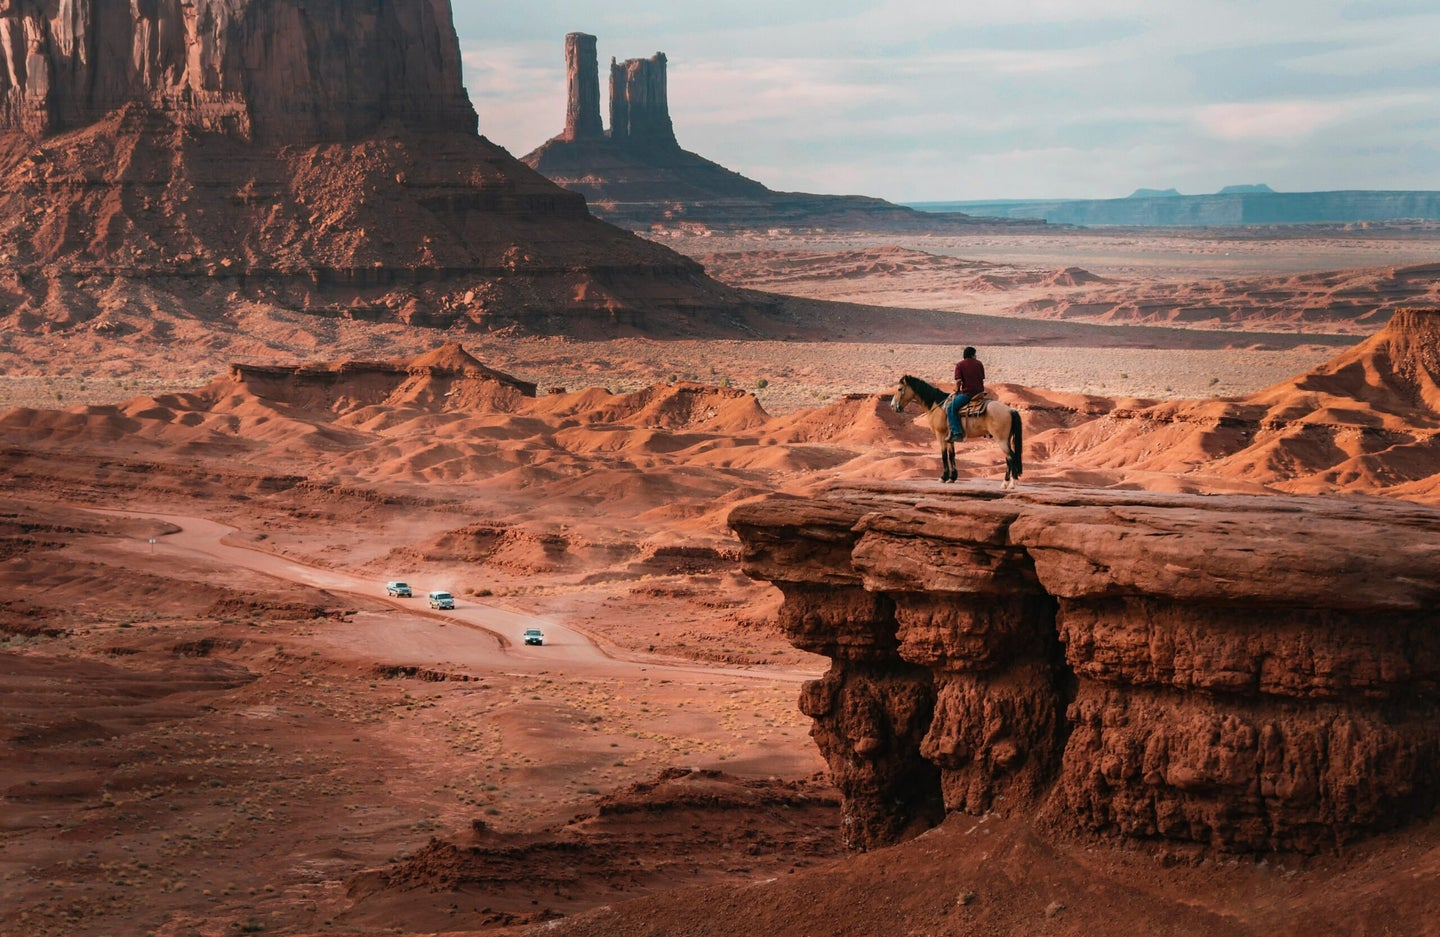 monument valley with person on horse in foreground cars in background